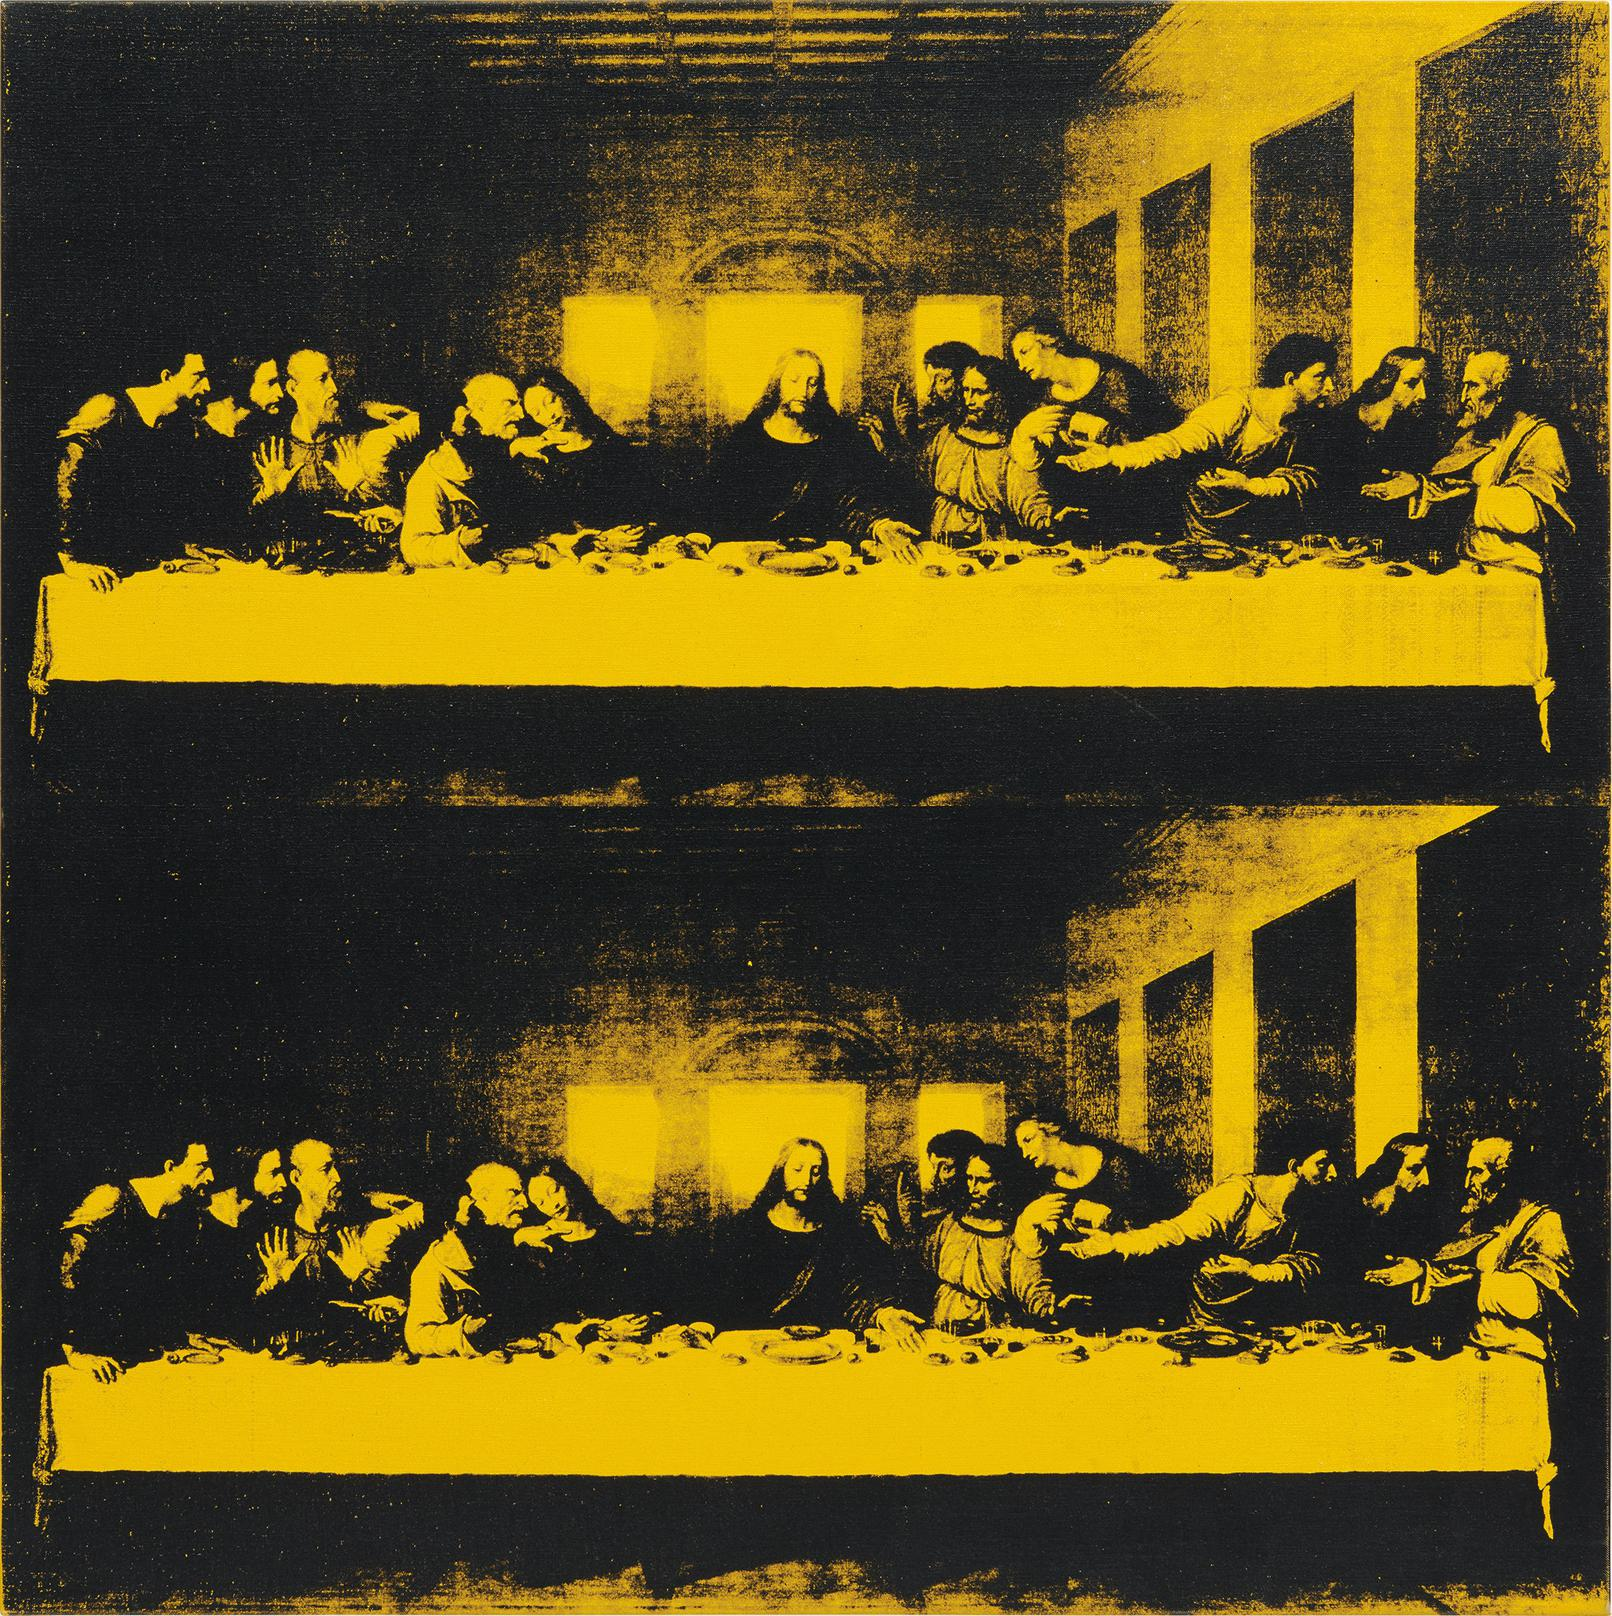 Andy Warhol-Last Supper-1986